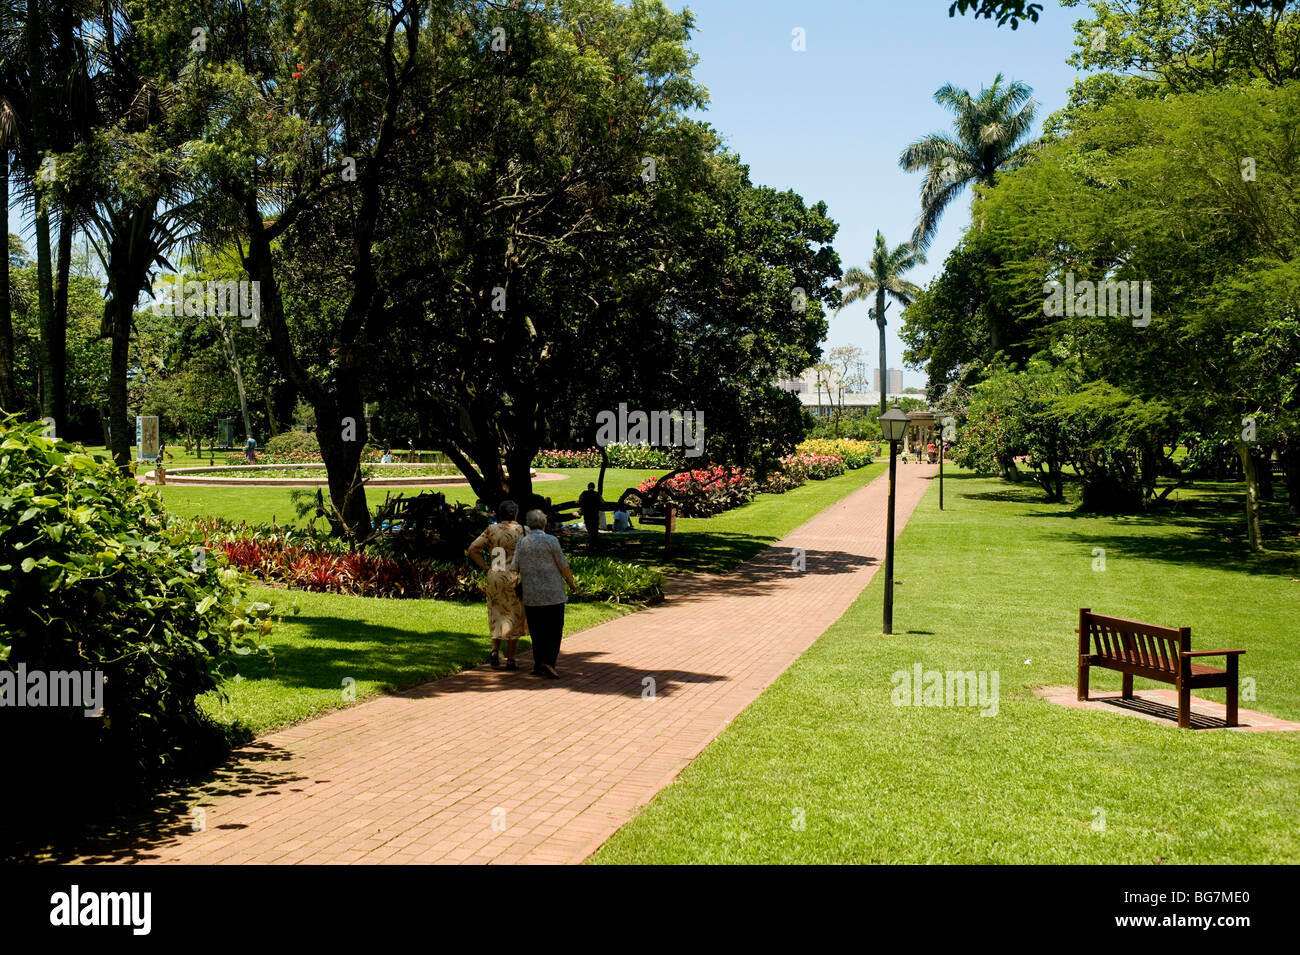 Durban South Africa Garden Stock Photos & Durban South Africa Garden ...